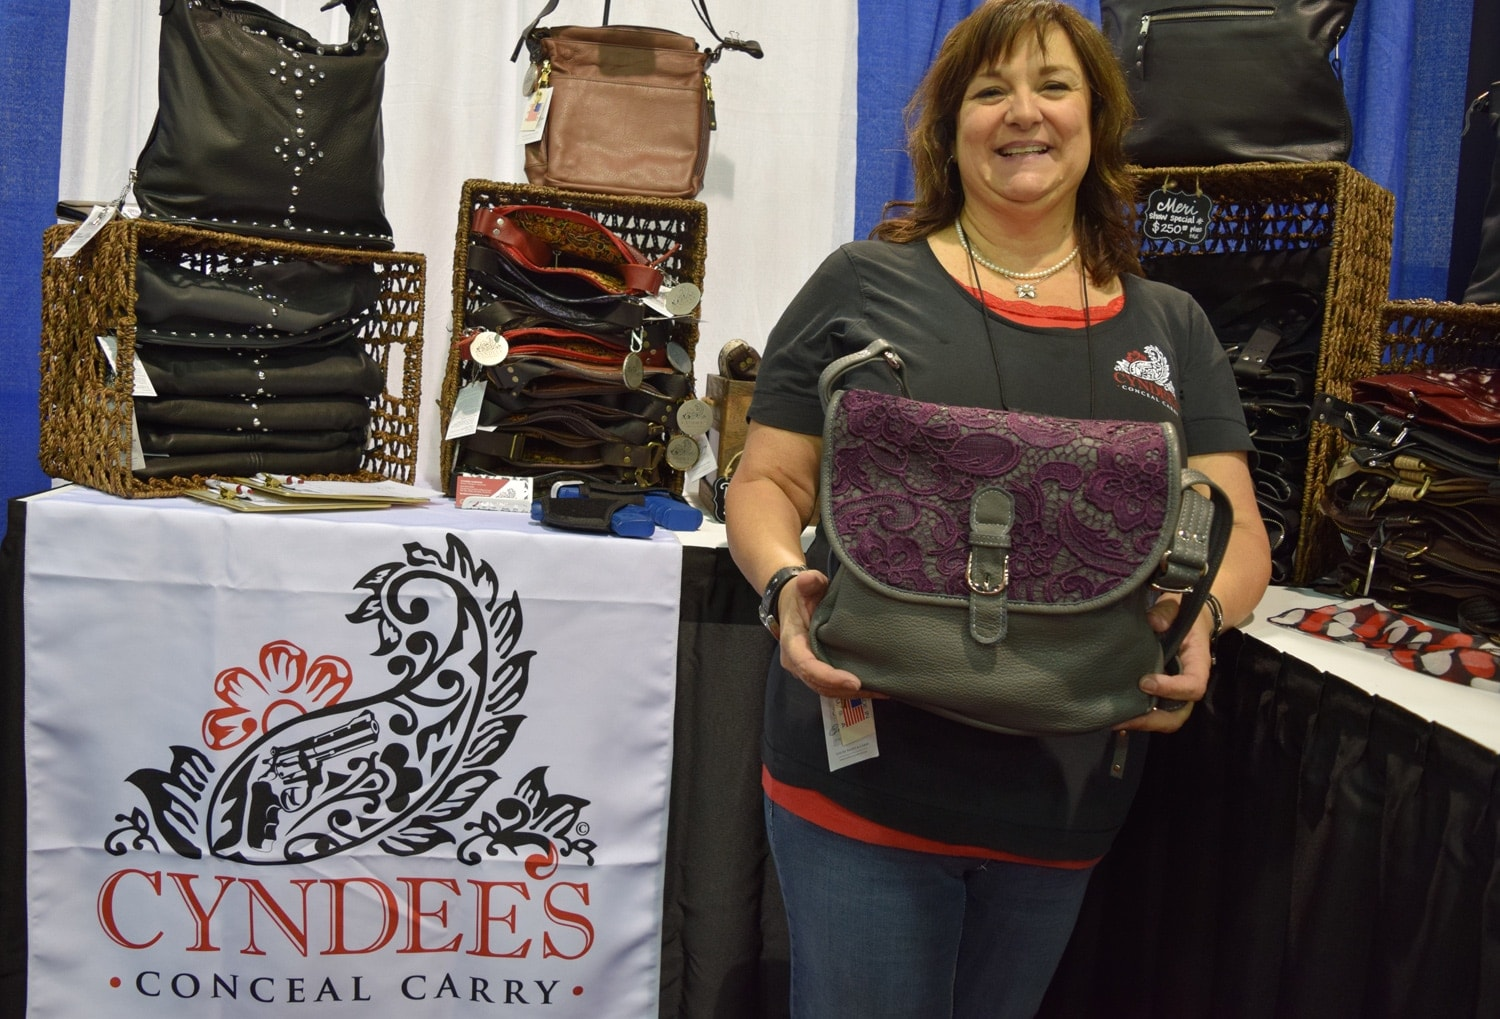 Cyndee Harding, owner and designer of Cyndee's Conceal Carry, highlights her bags and lacy motif. (Photo: Daniel Terrill/Guns.com)